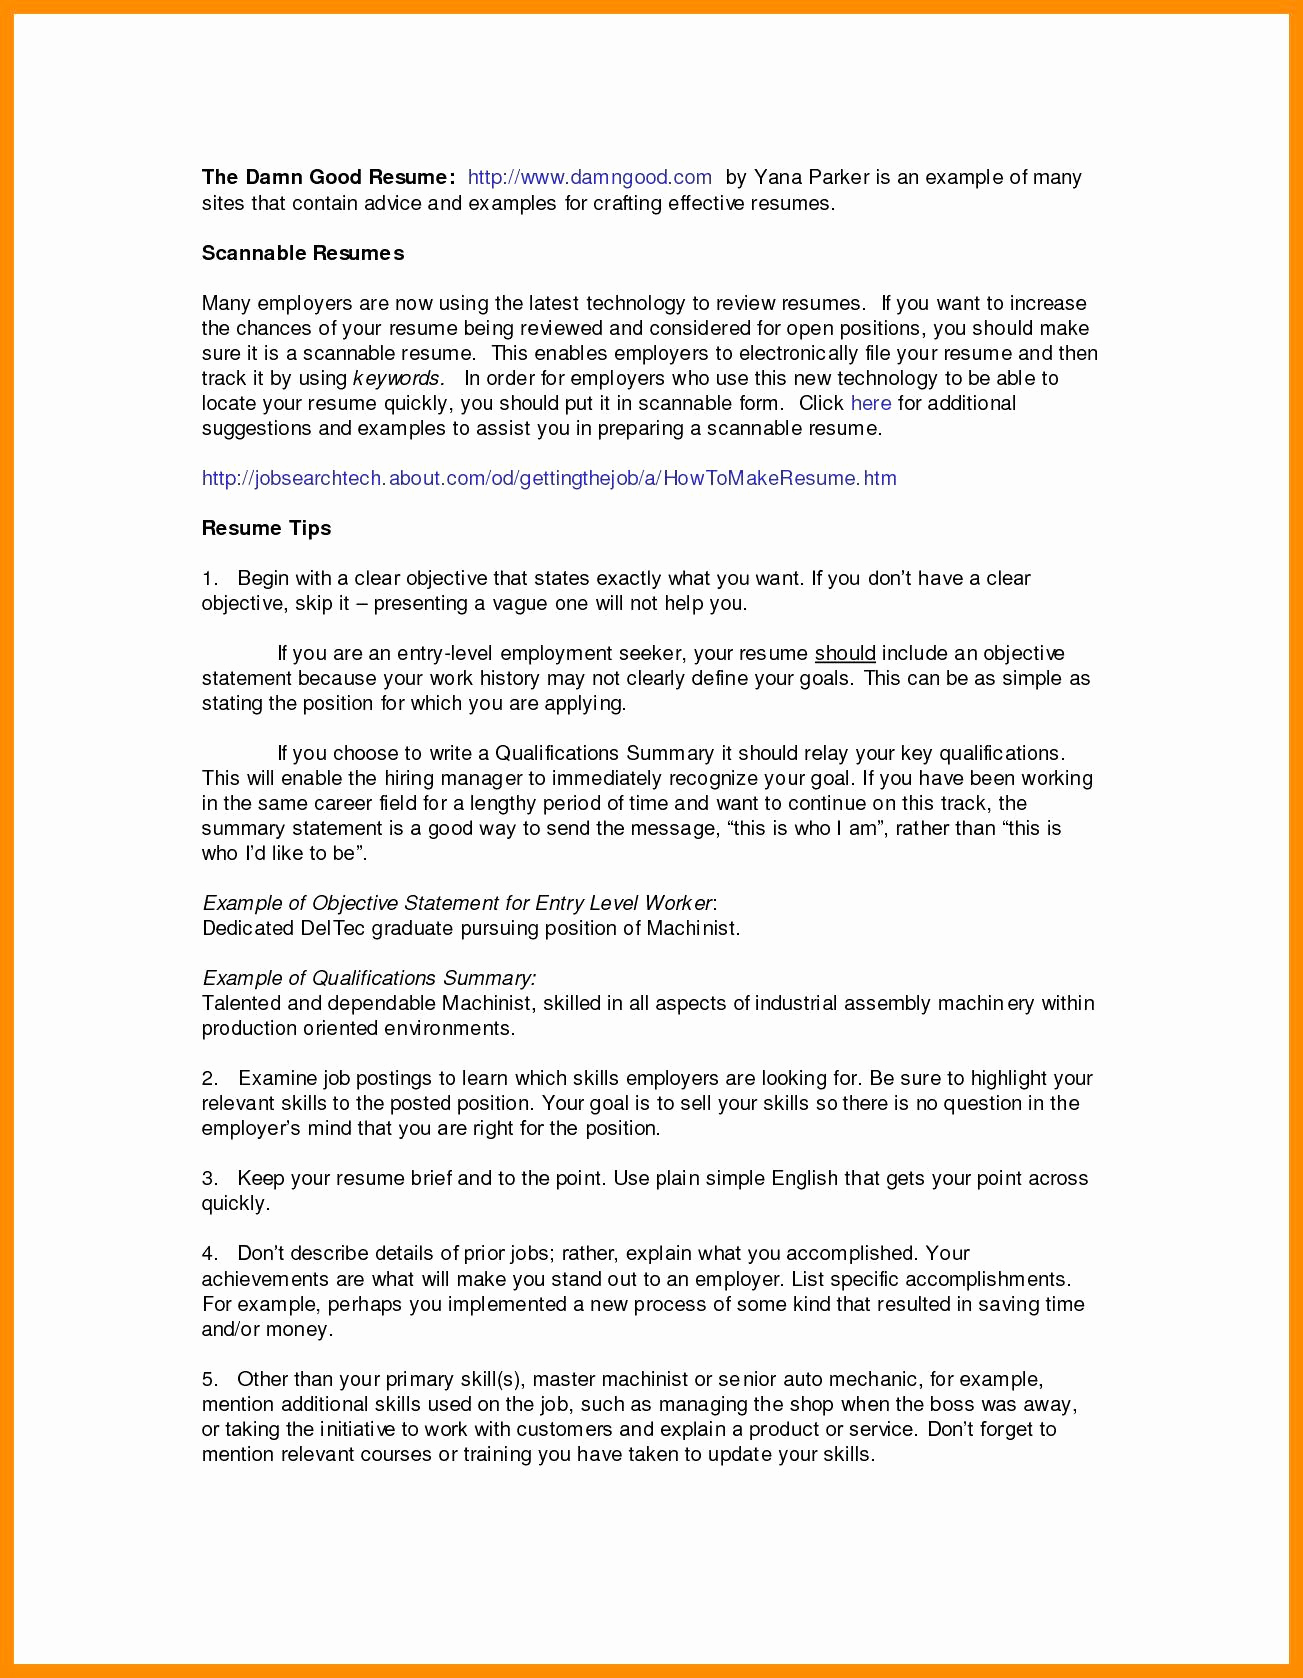 Medical assistant Resume with No Experience - Medical Support assistant Resume Samples Chiropractic assistant